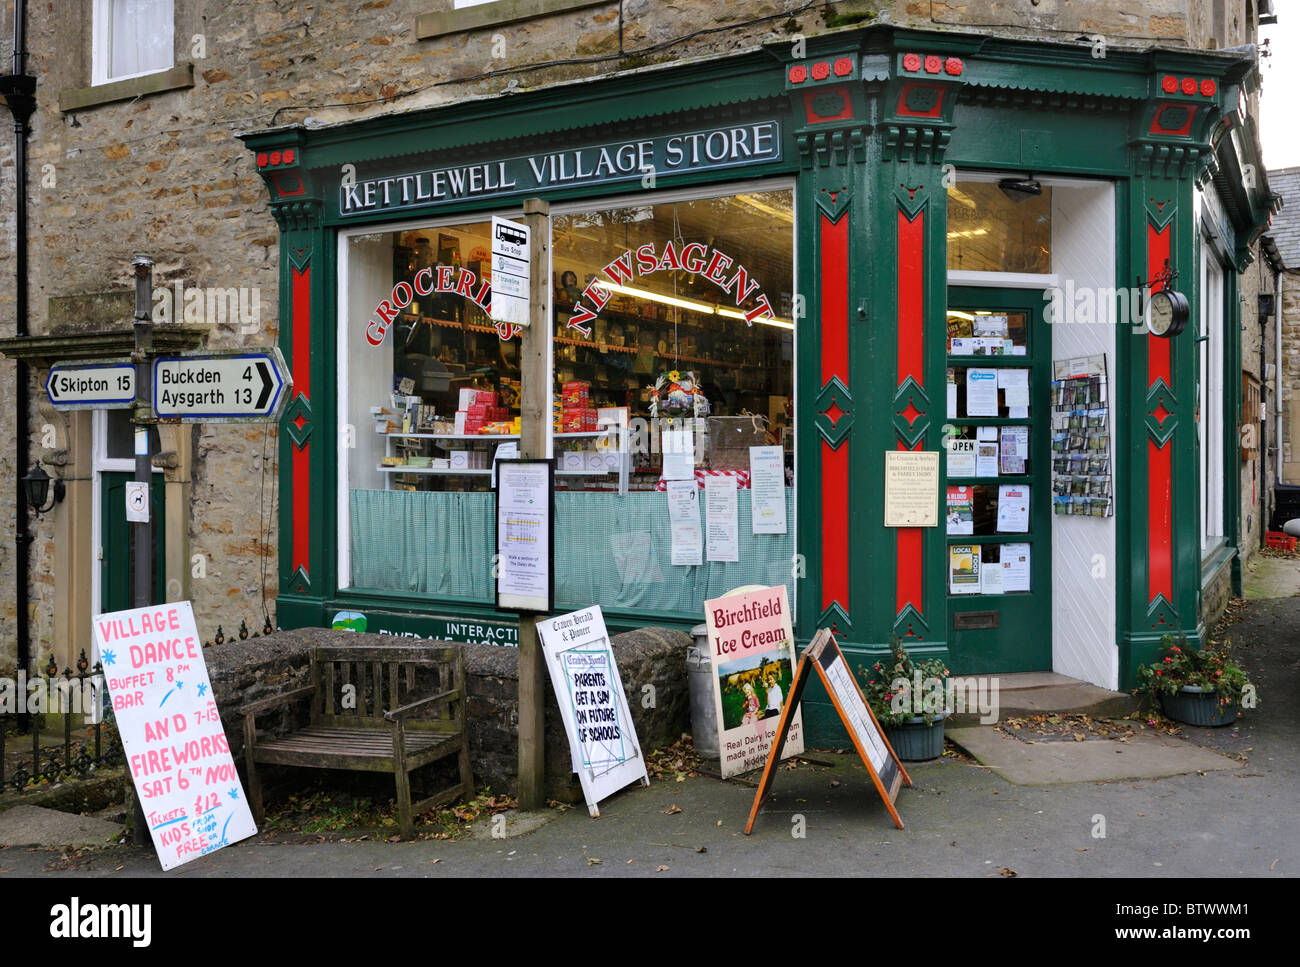 The local shop in the village of Kettlewell, Wharfedale, Yorkshire Dales National Park, England. - Stock Image